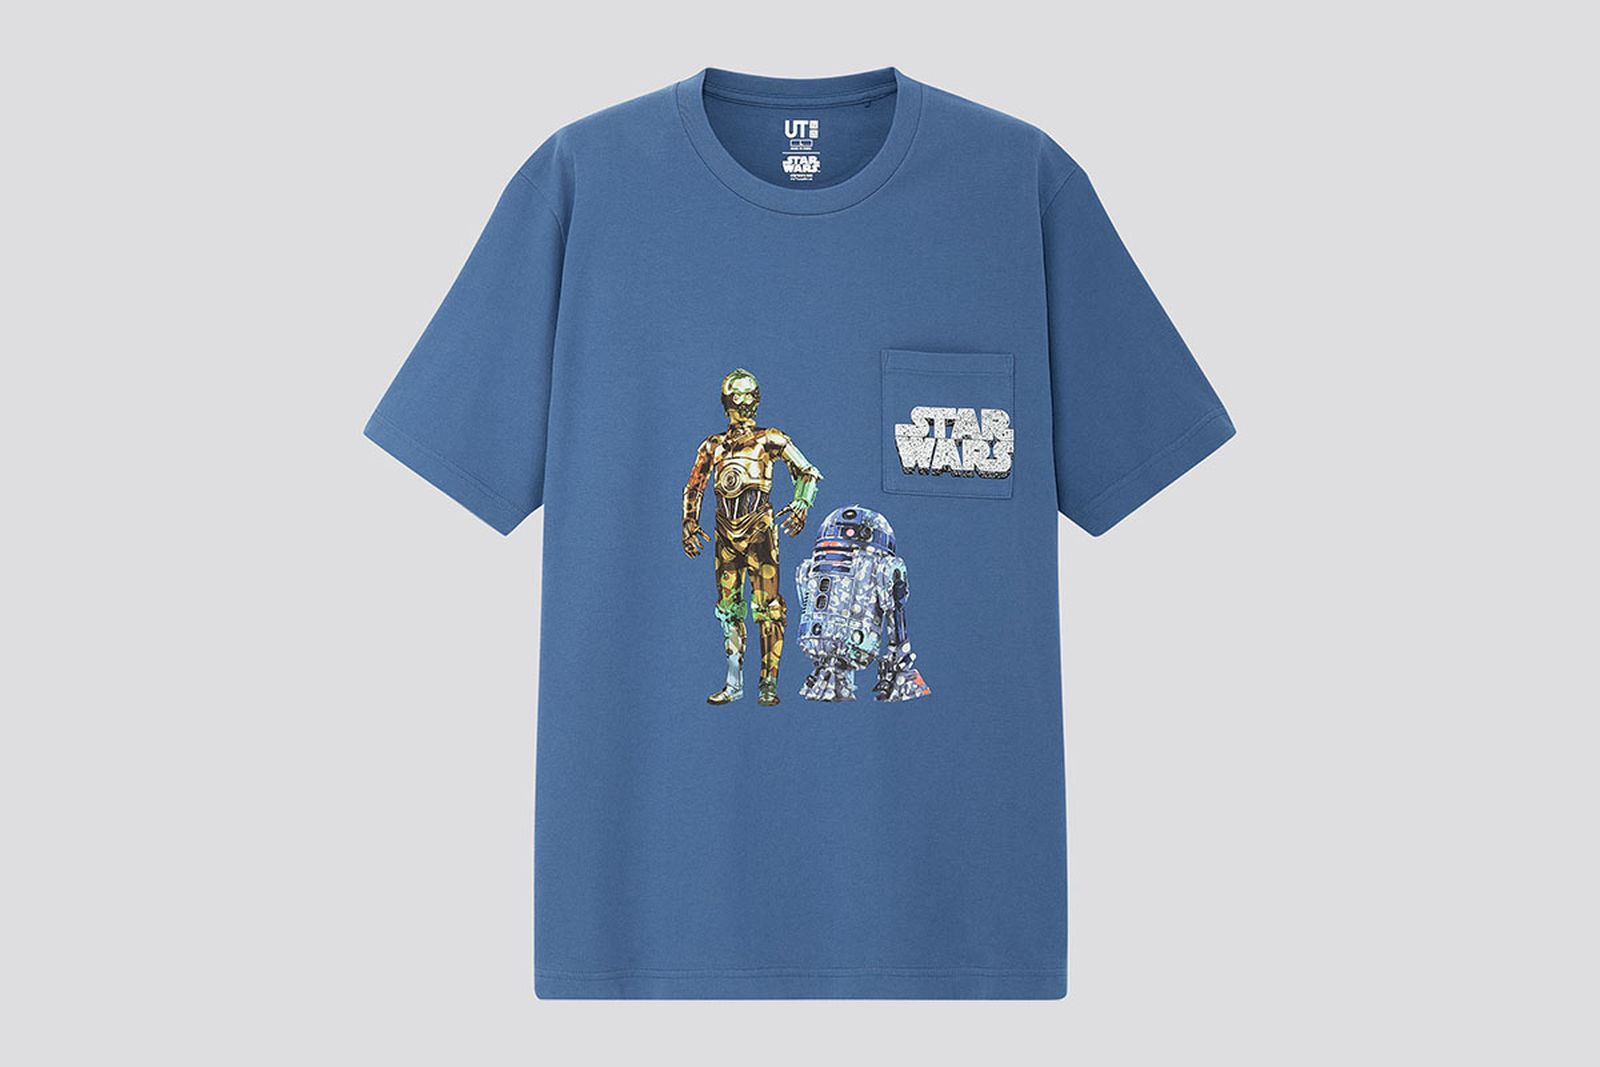 uniqlo-ut-star-wars-collection-15